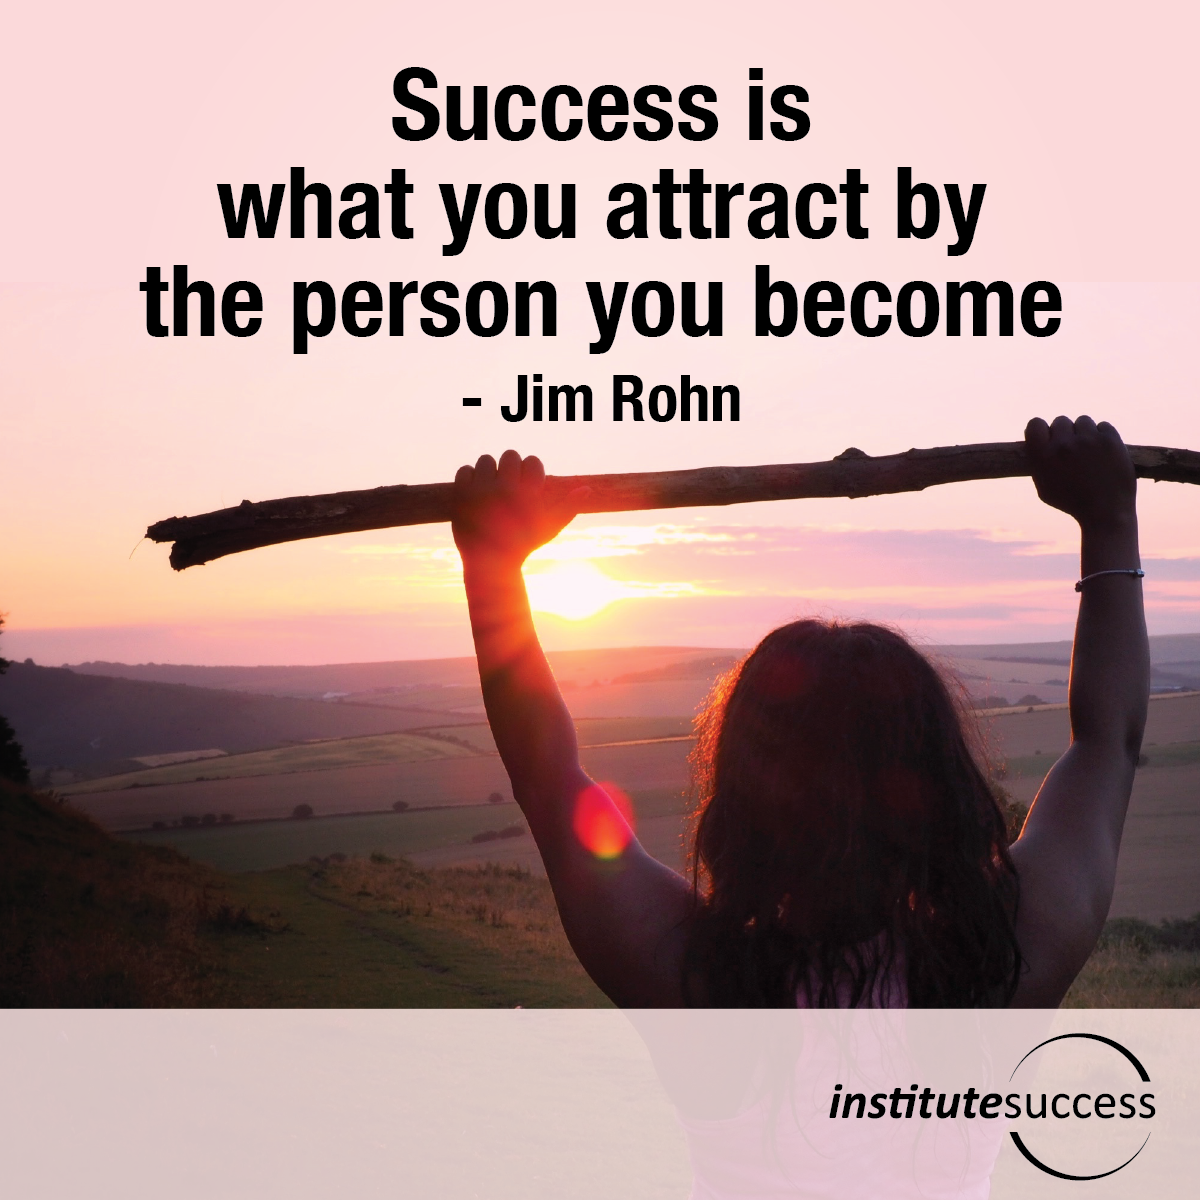 Success is what you attract by the person you become – Jim Rohn